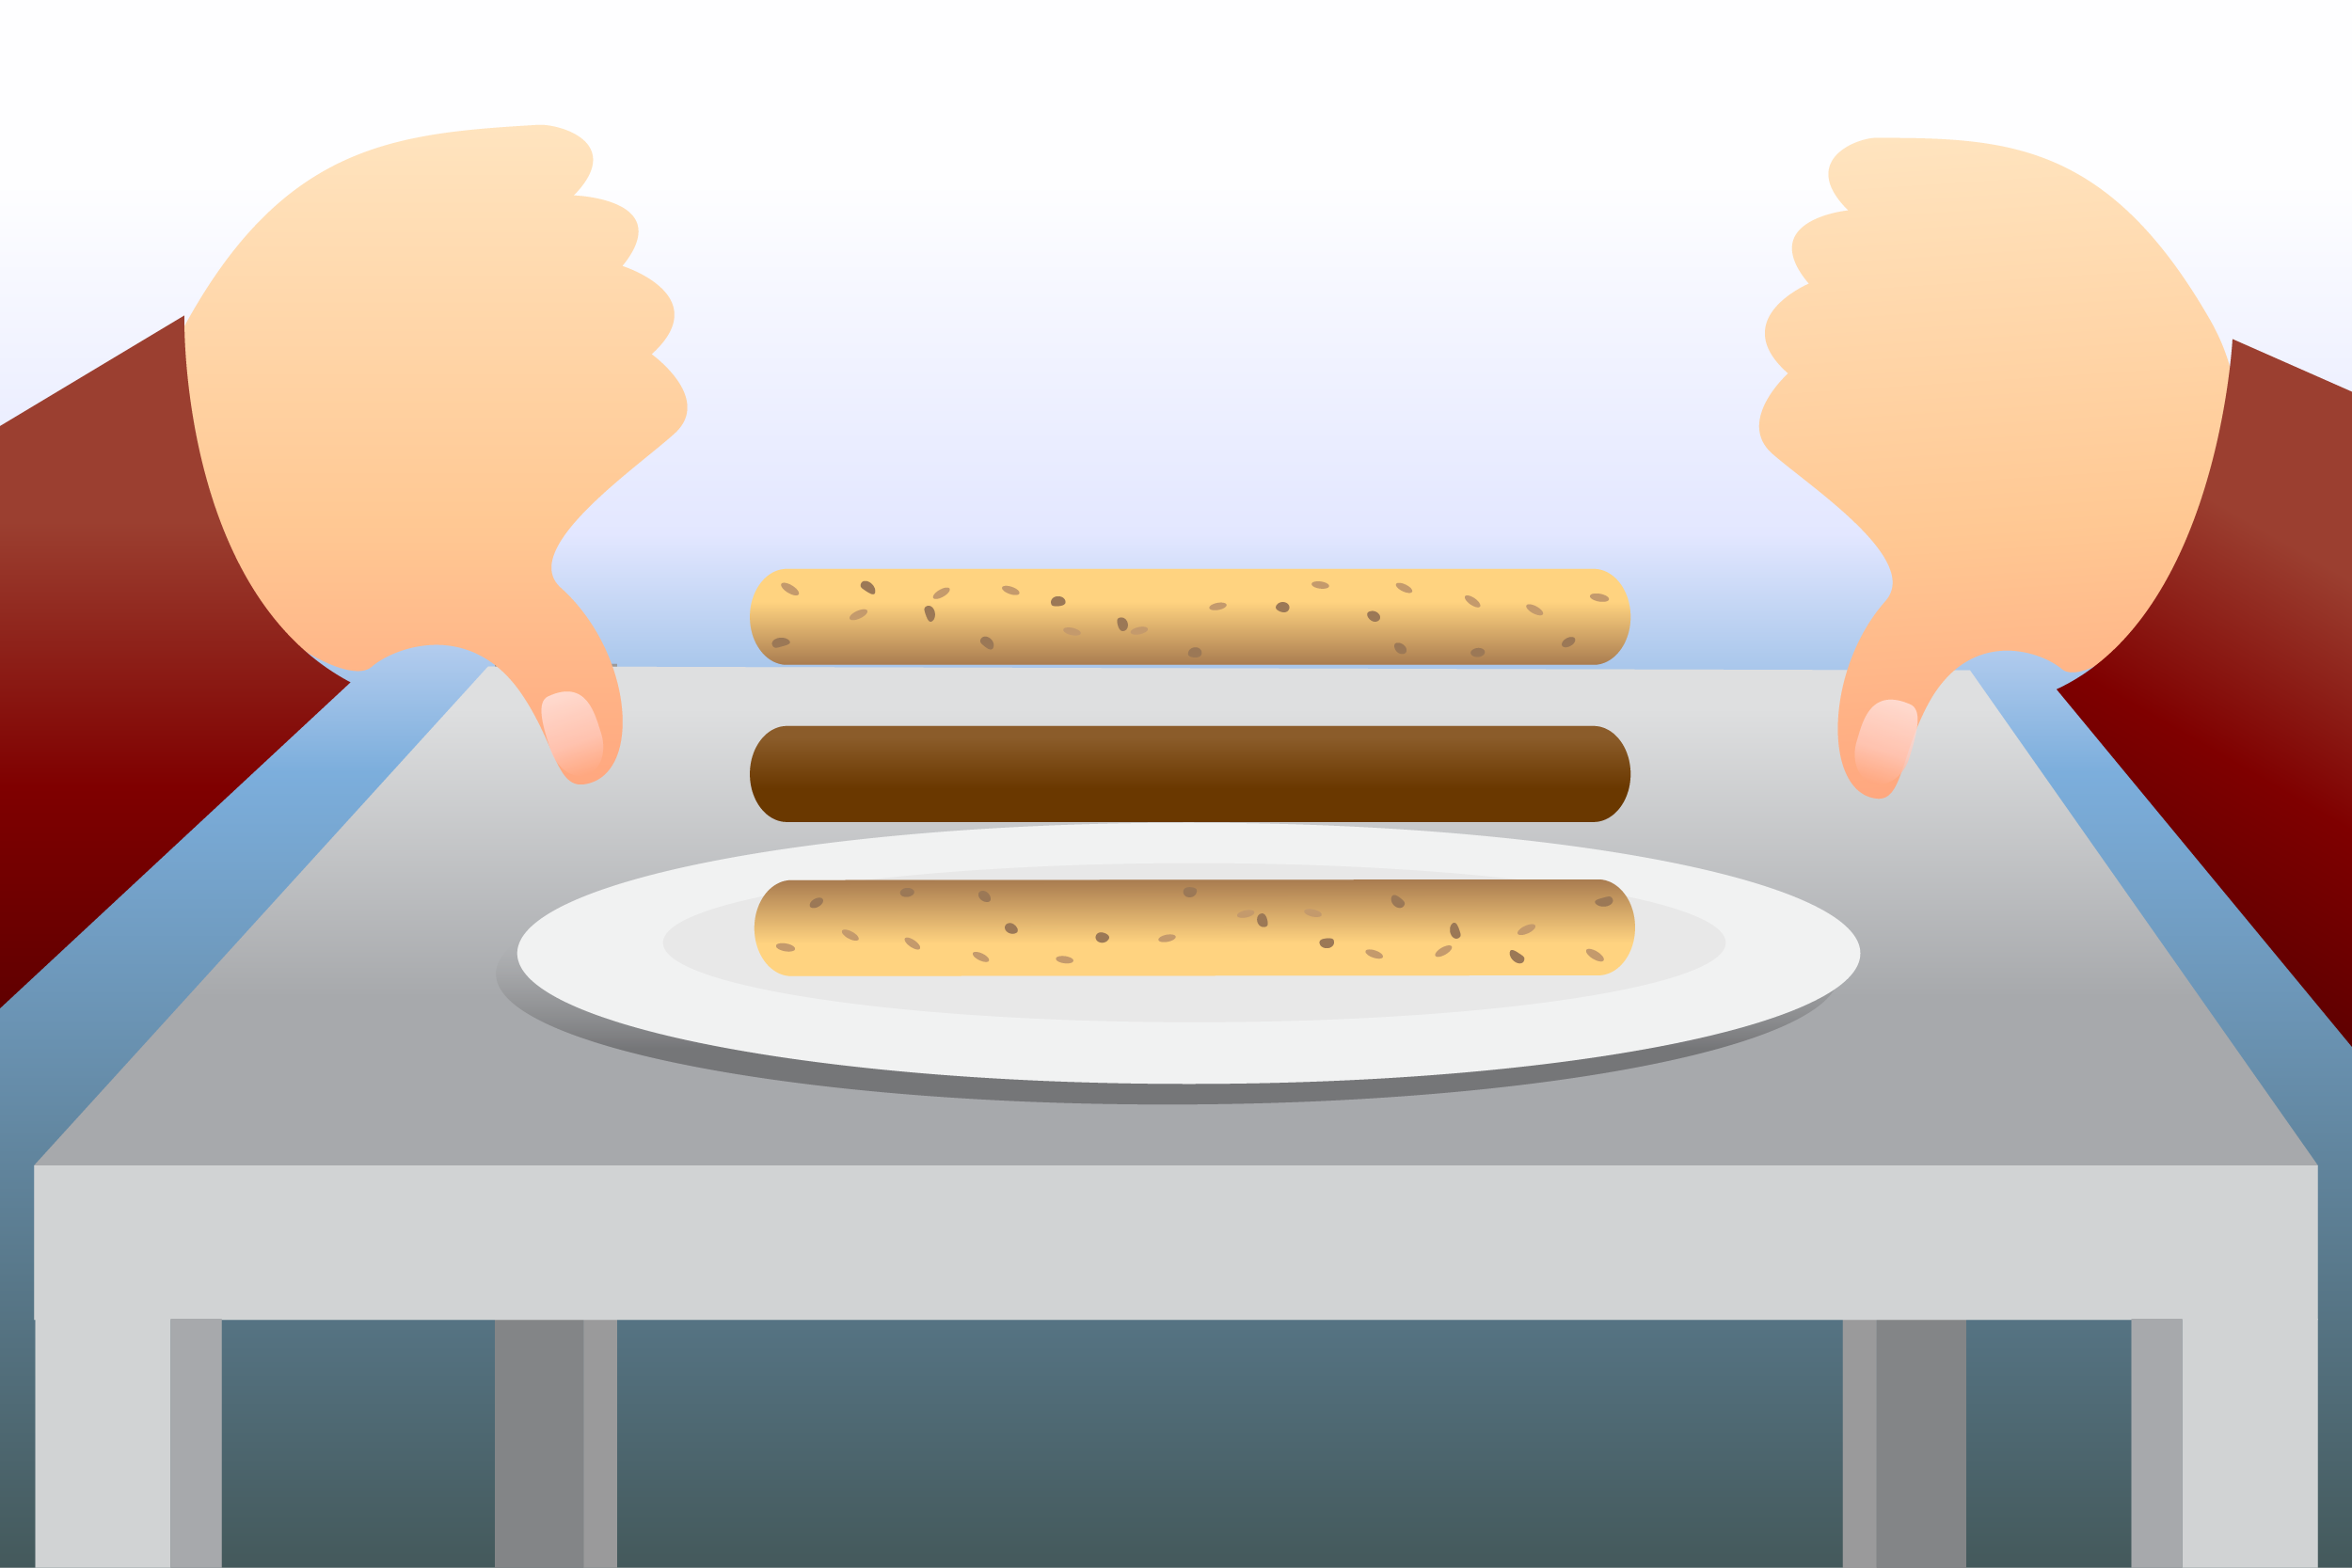 Web design hacks: Tasty alternatives to the hamburger icon